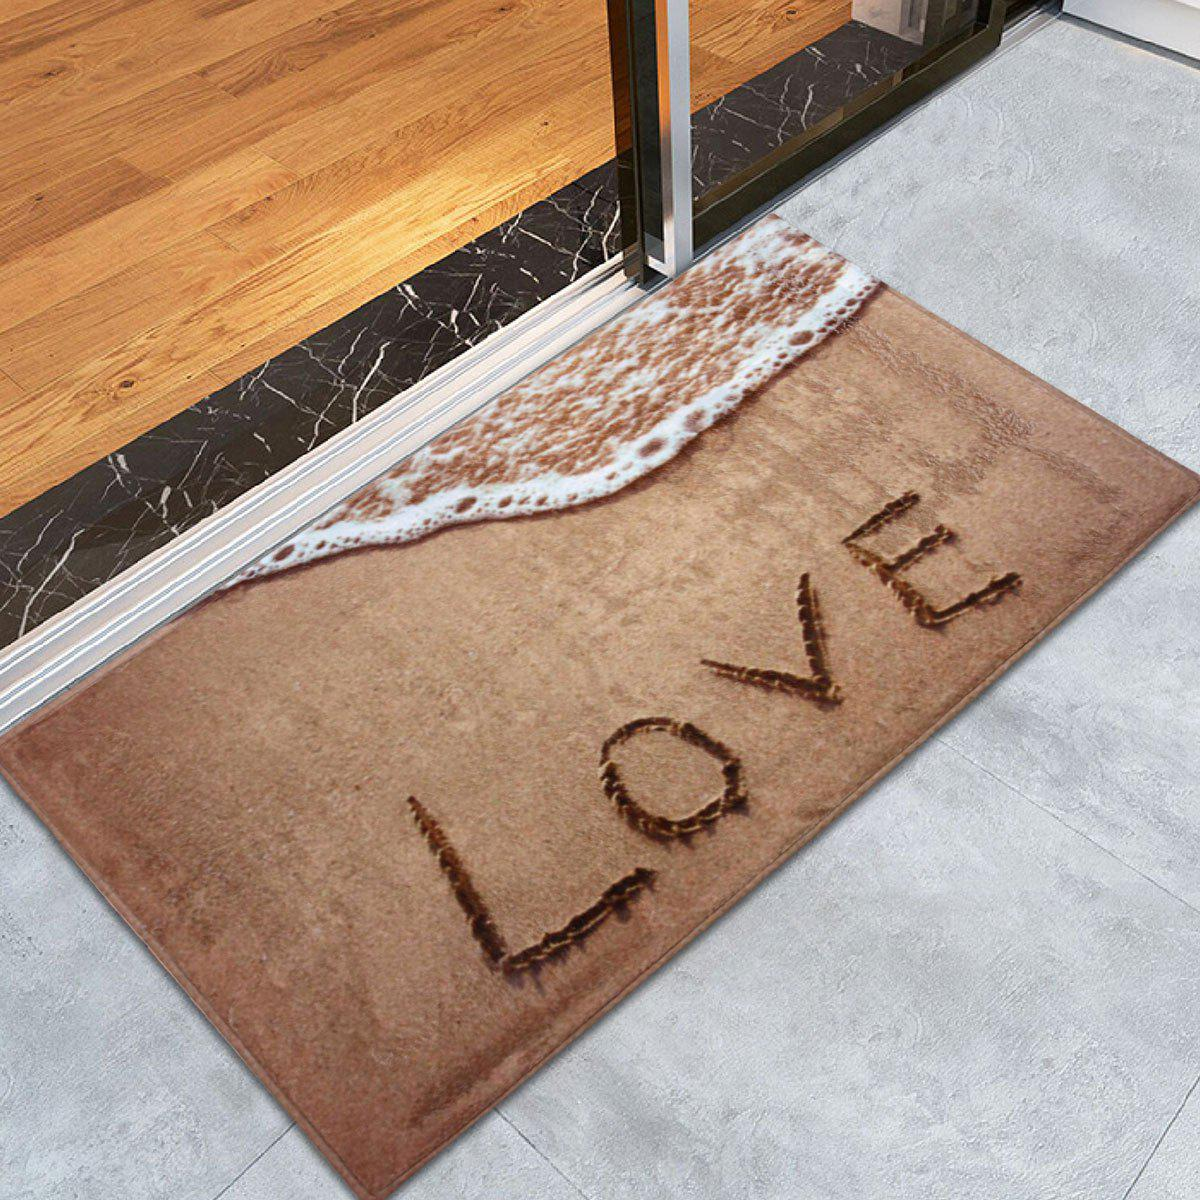 Coral Velvet Antislip Beach Style Bathroom RugHOME<br><br>Size: W24 INCH * L35.5 INCH; Color: LIGHT BROWN; Products Type: Bath rugs; Materials: Coral FLeece; Pattern: Print; Style: Beach Style; Shape: Rectangle; Package Contents: 1 x Area Rug;